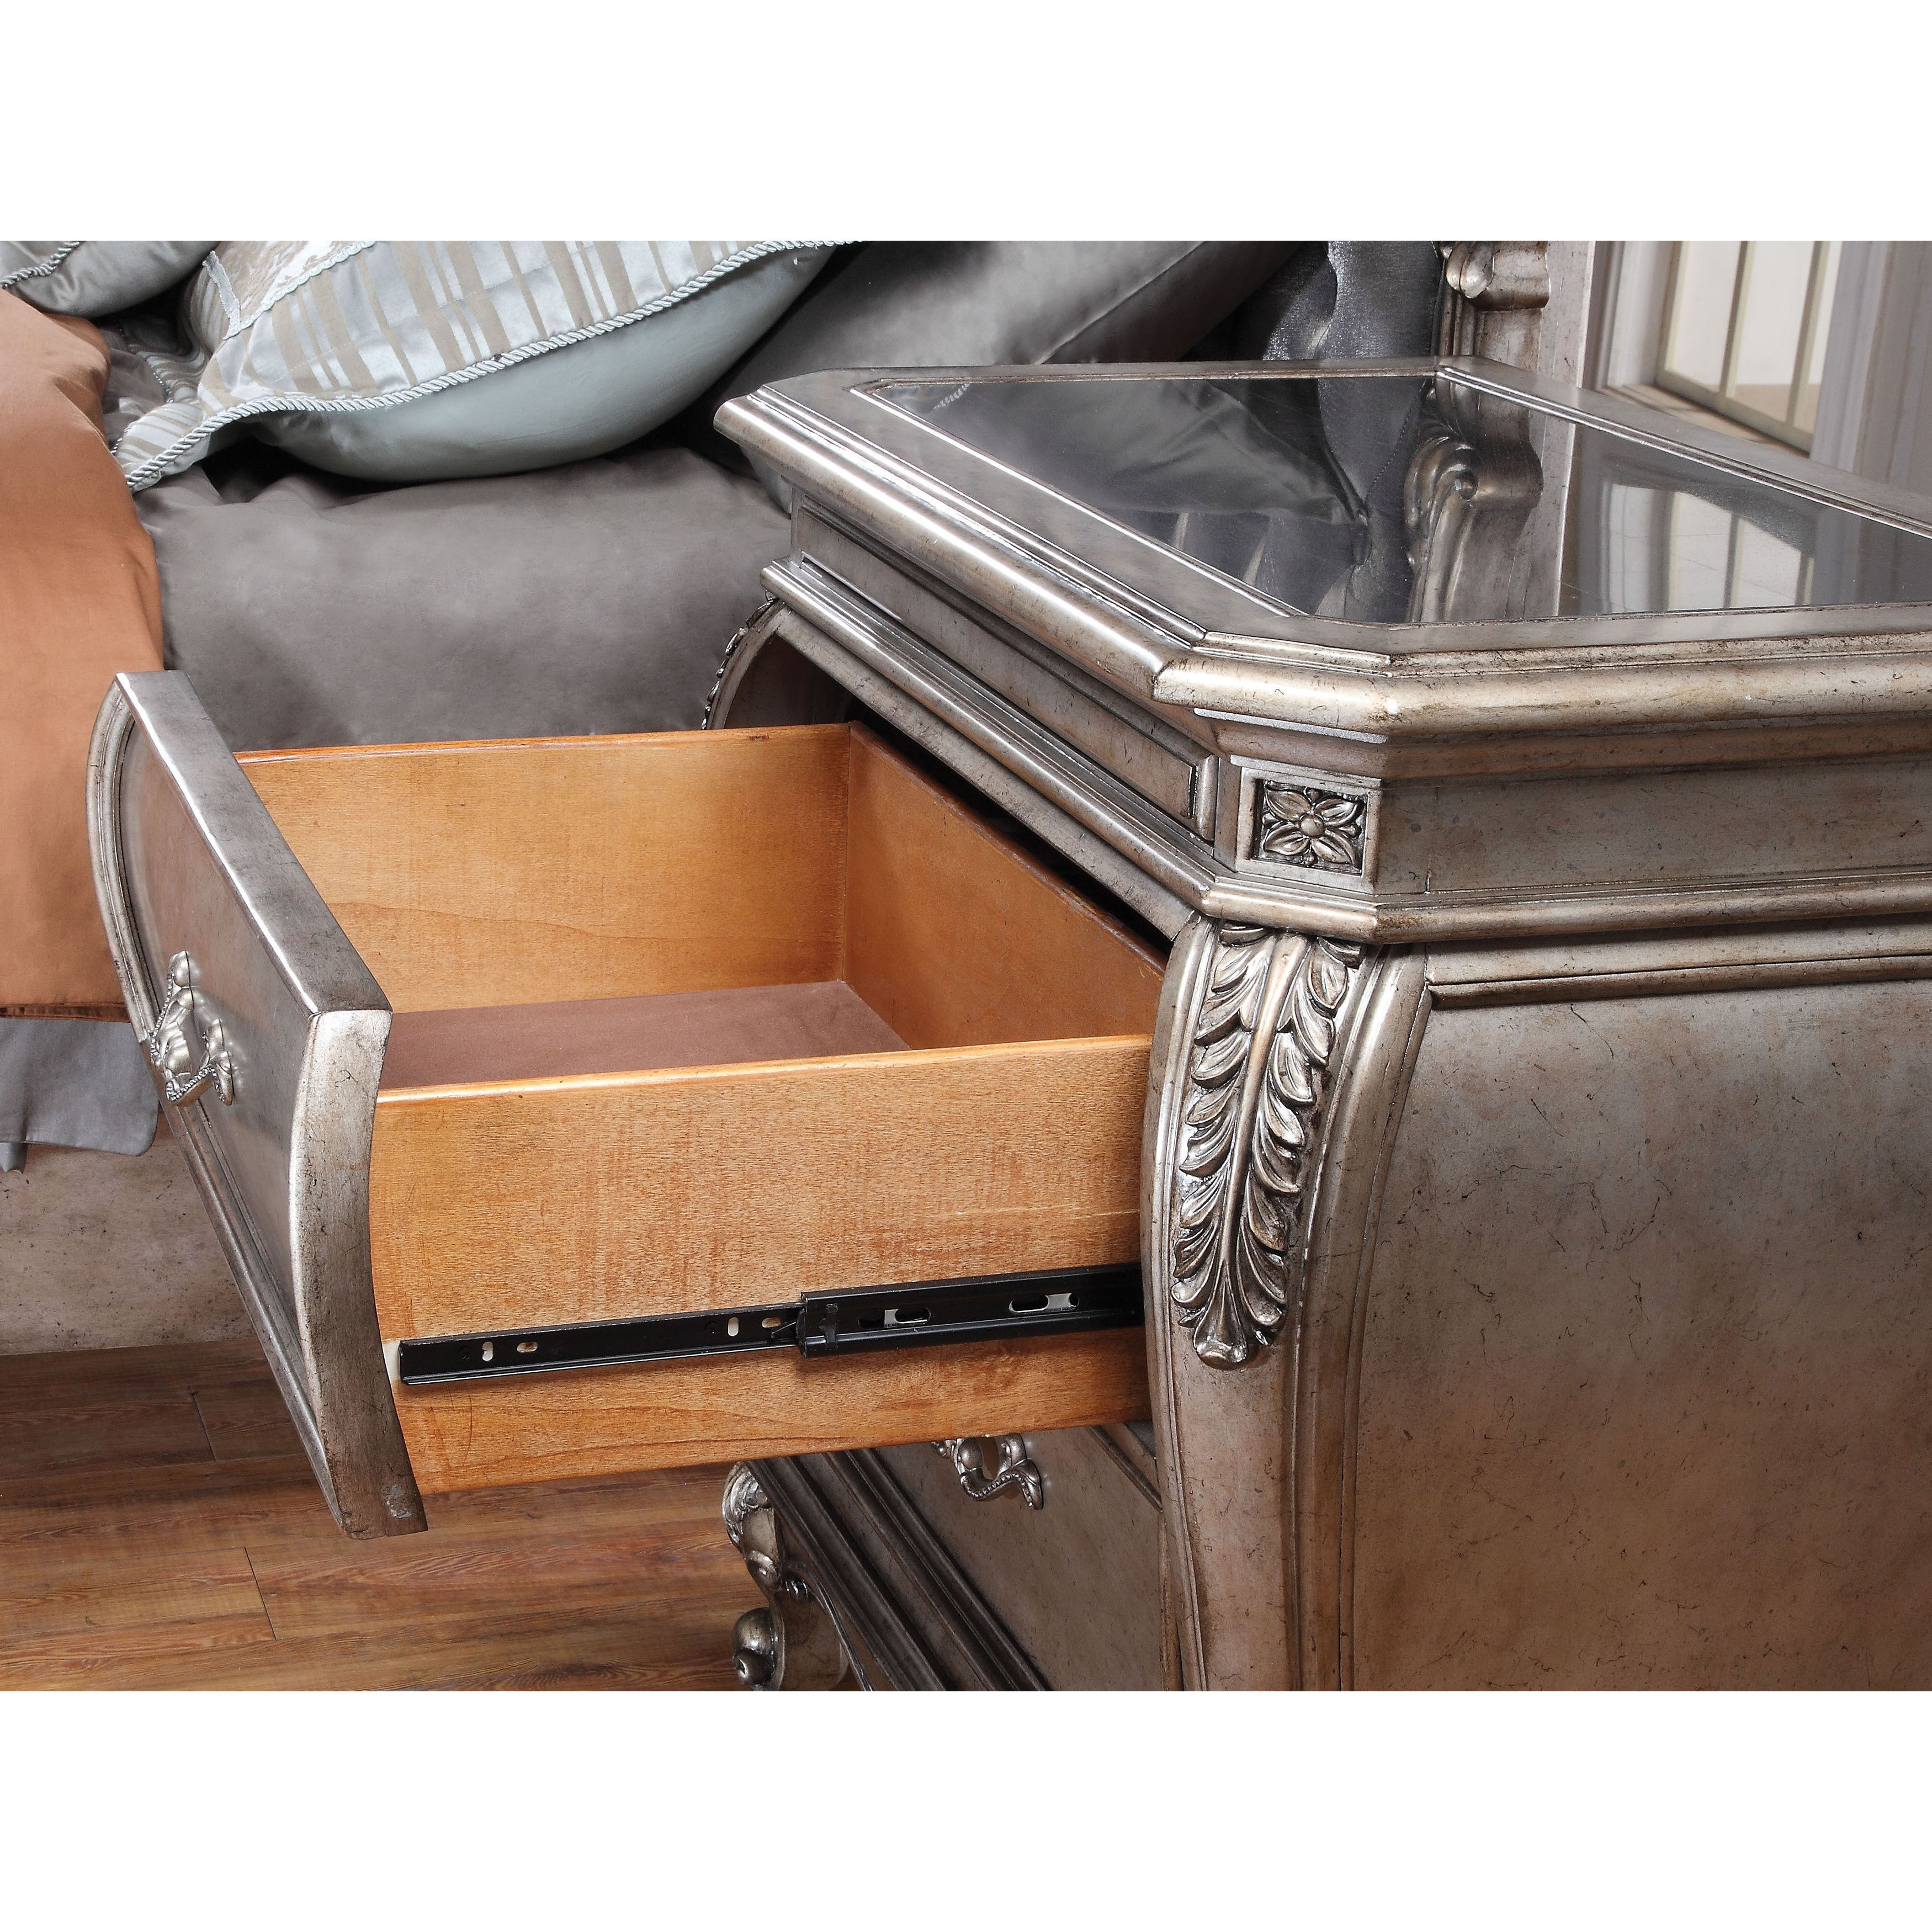 Shop Acme Furniture Chantelle 4 Piece Bedroom Set, Antique Platinum With  Silver Gray Silk Like Fabric   Free Shipping Today   Overstock.com    14154151